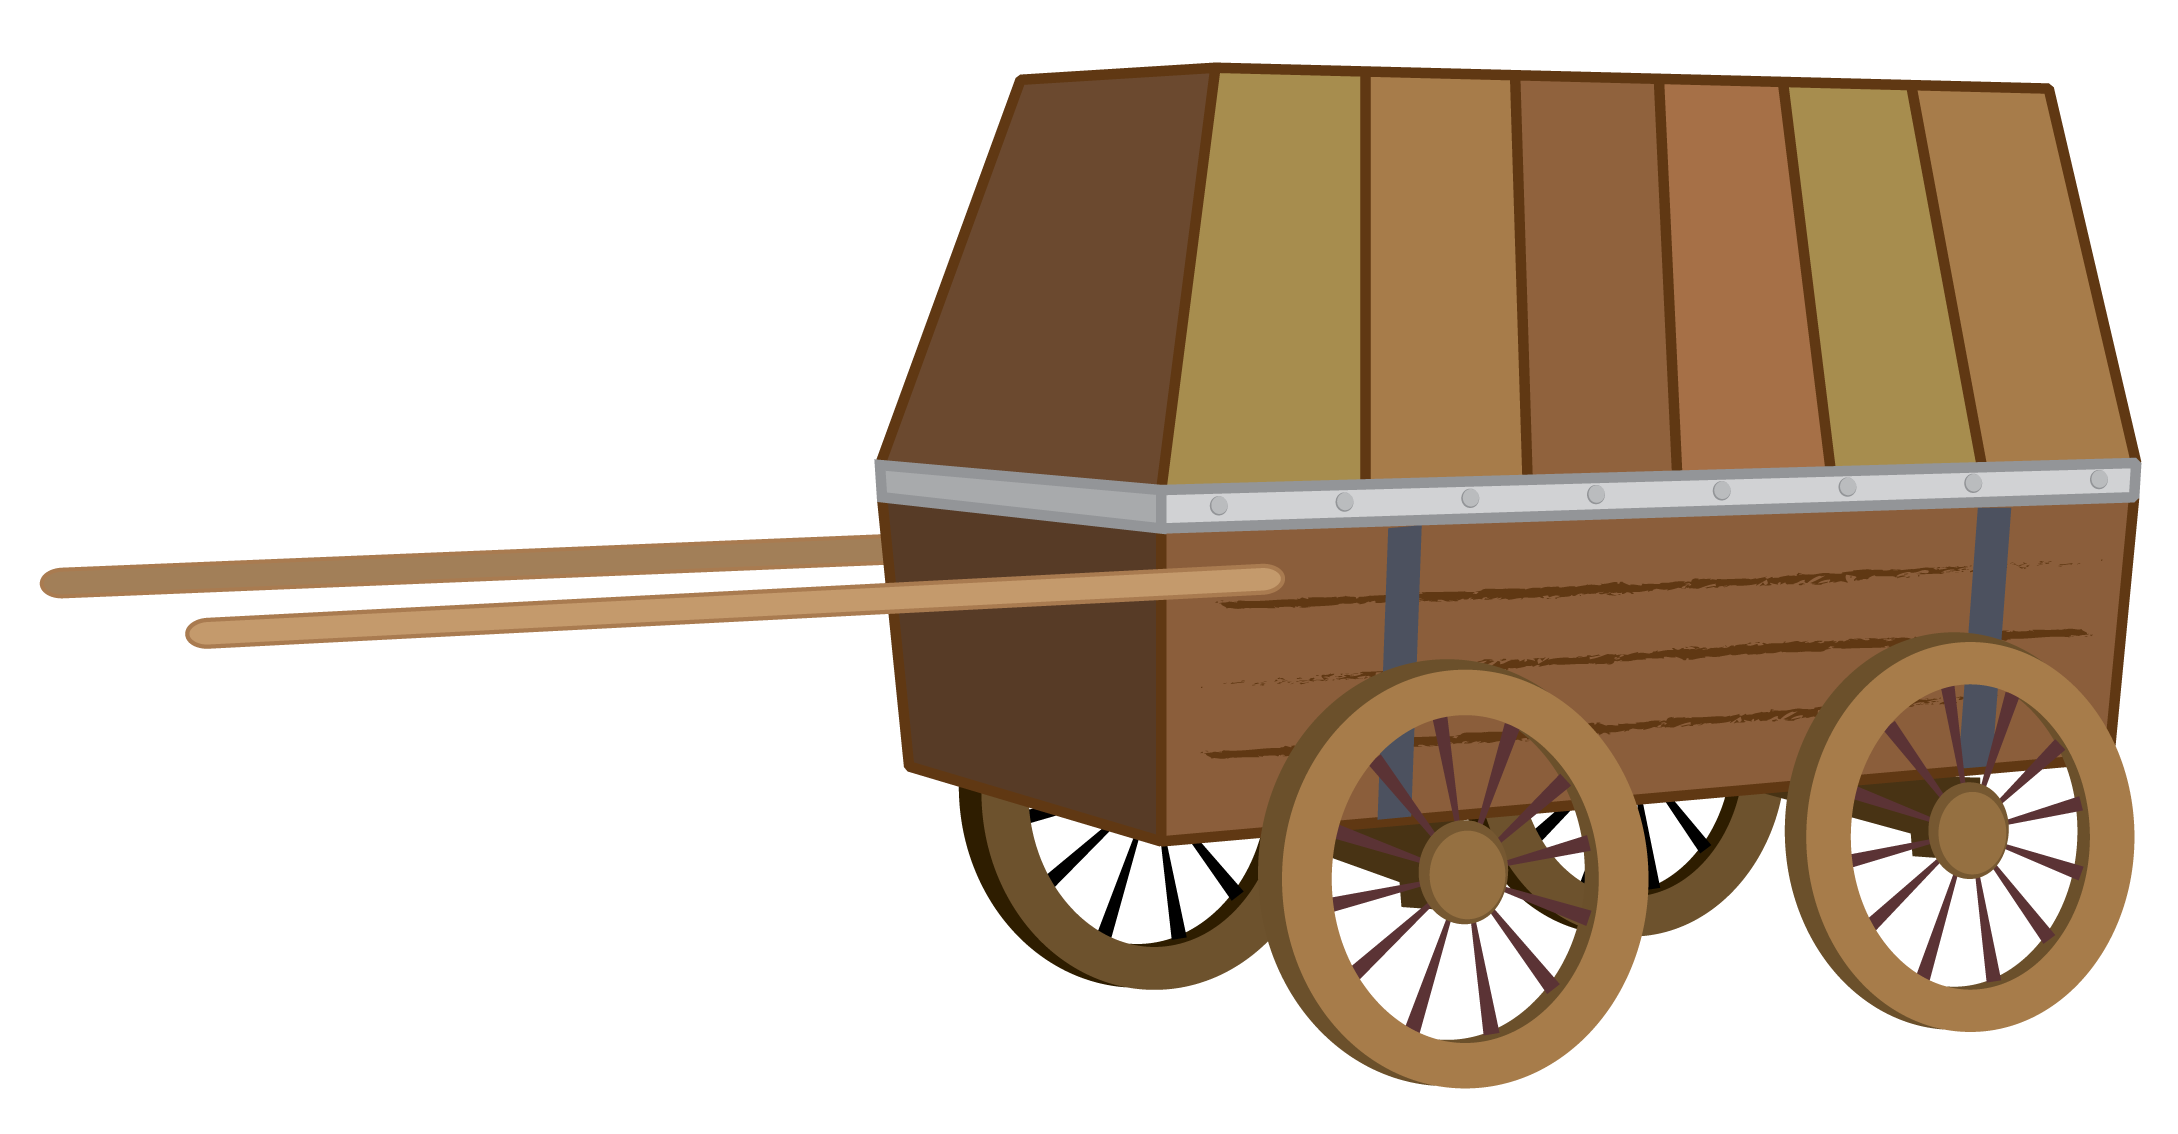 Wagon svg #17, Download drawings